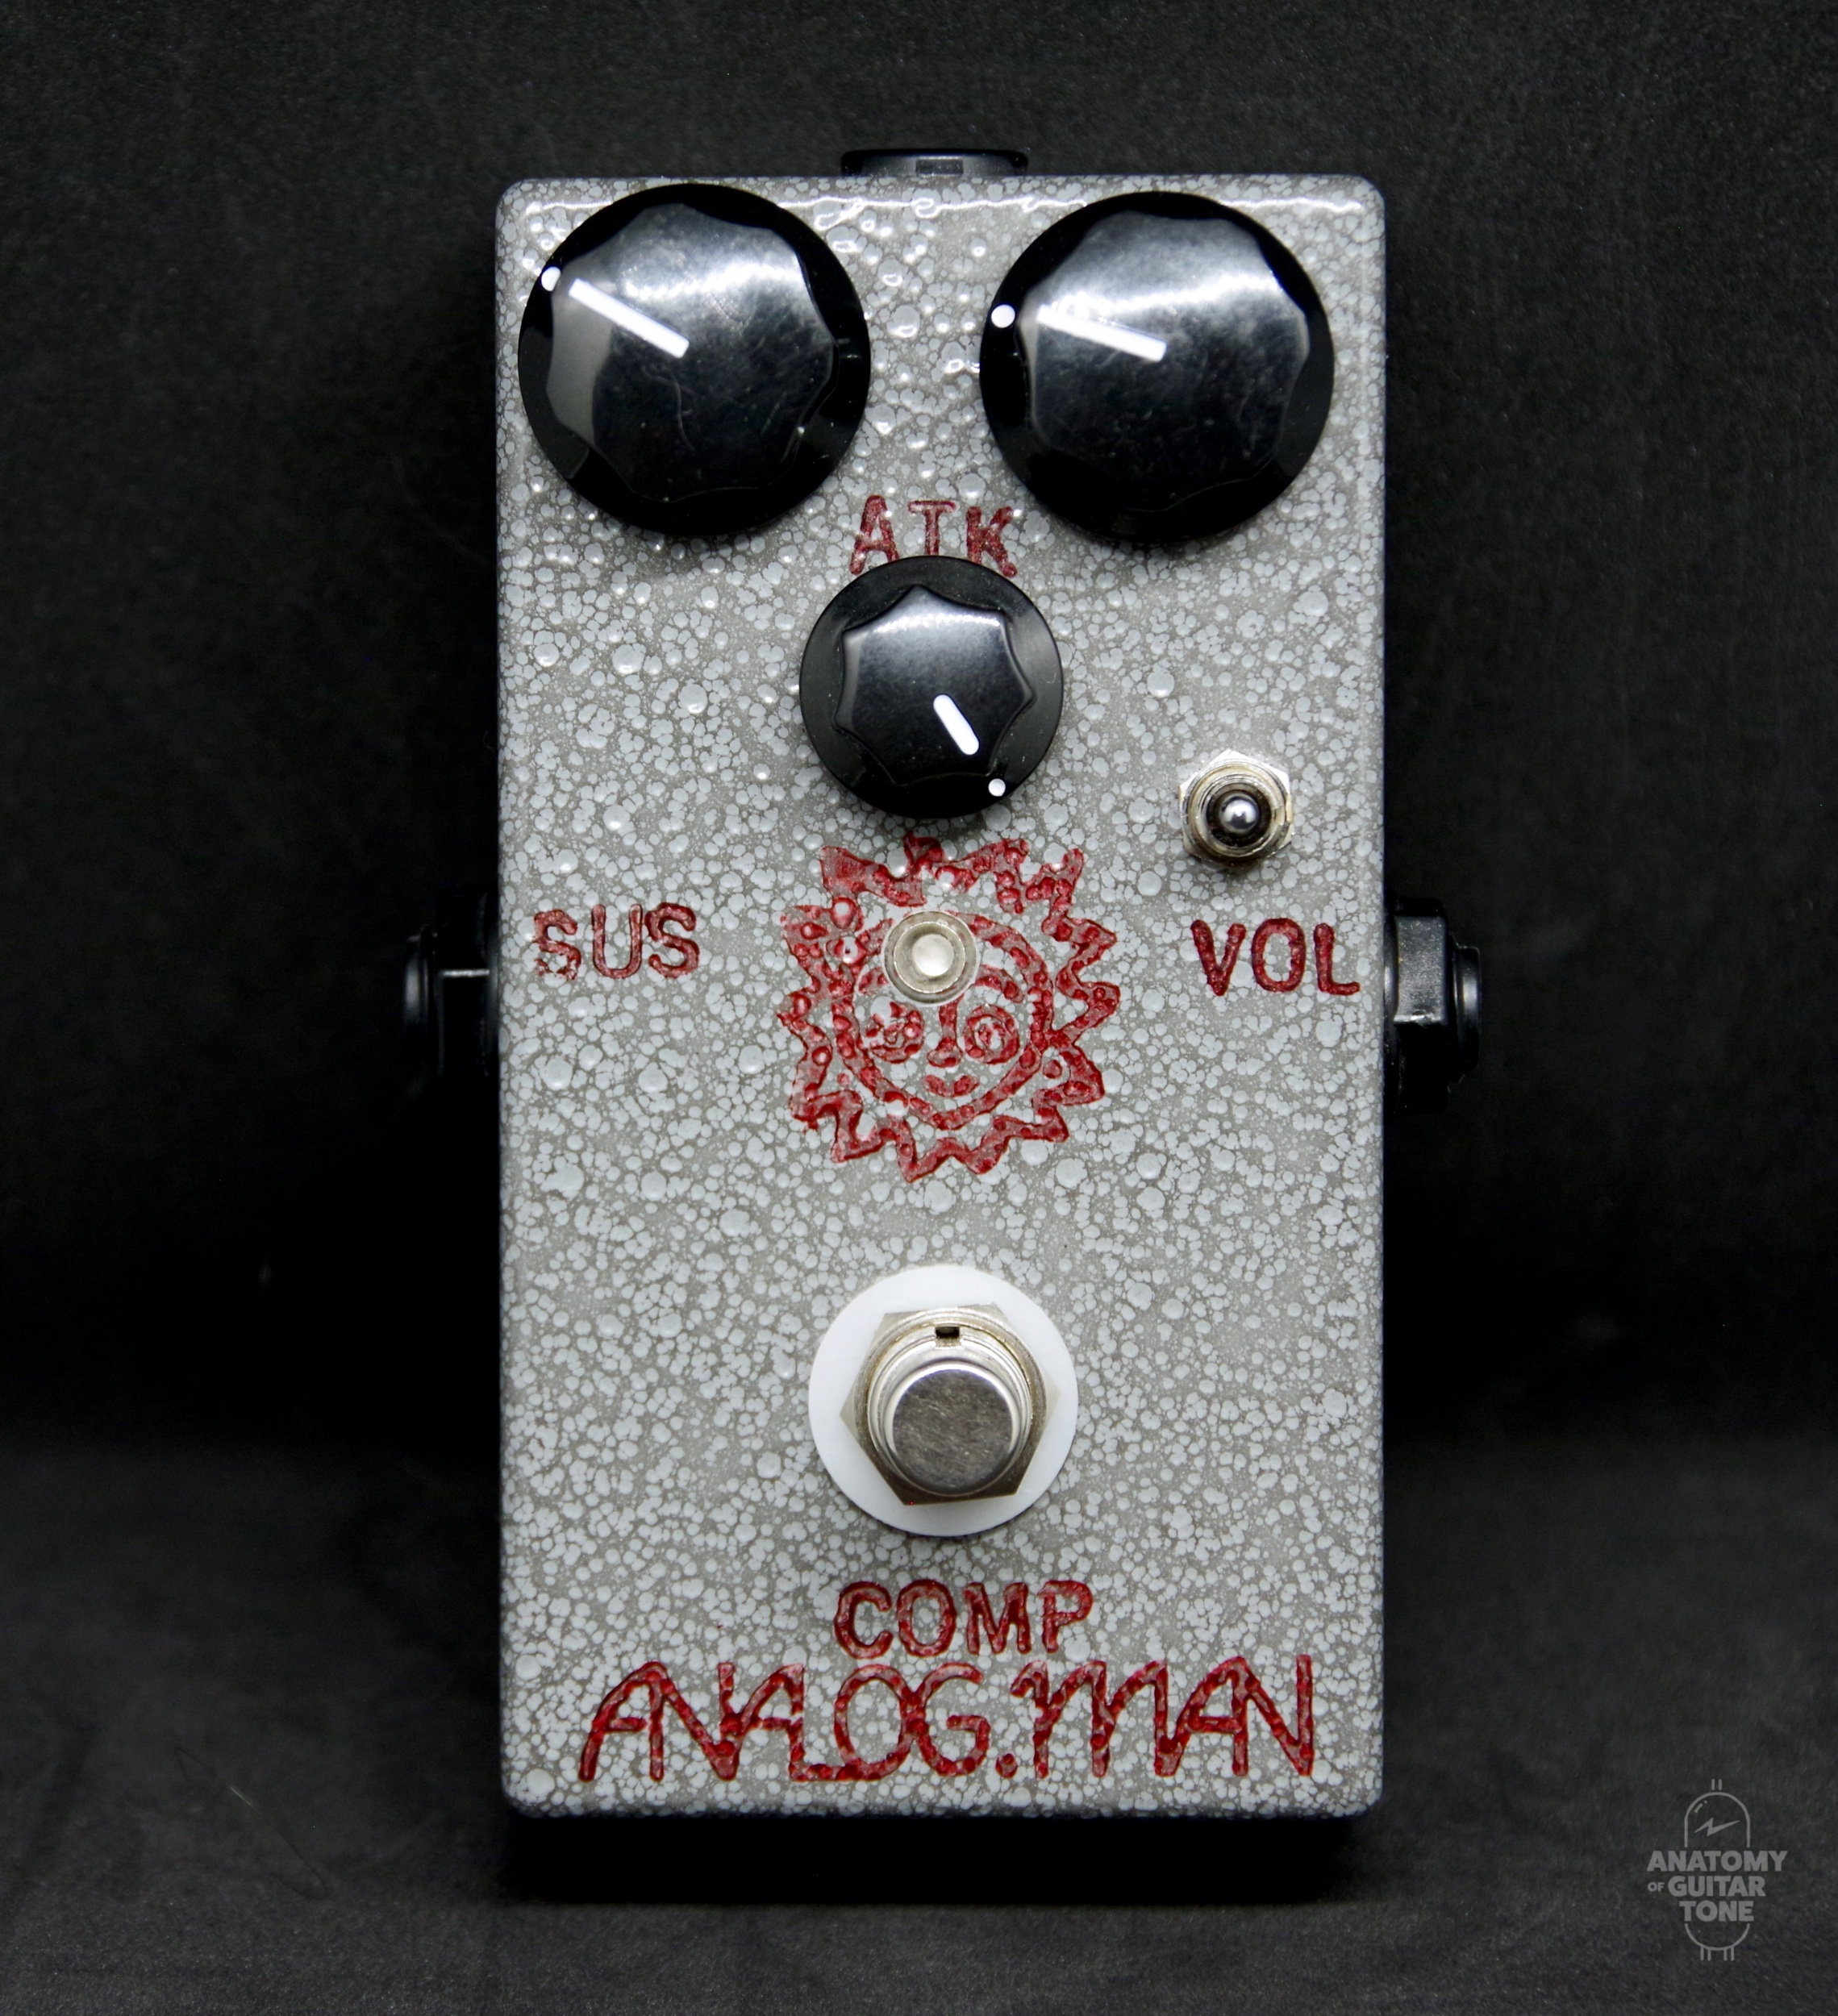 Analog Man CompROSSor with RYCK mod